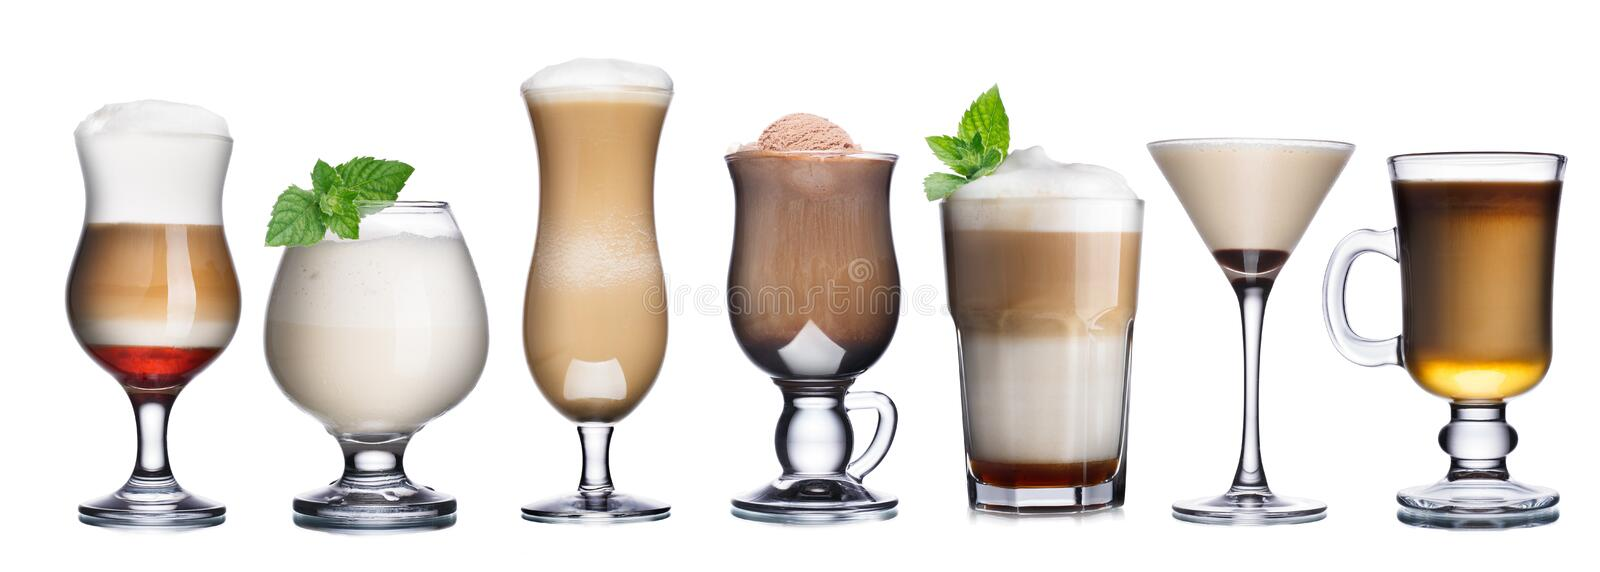 Coffee cocktails collection isolated on white royalty free stock images